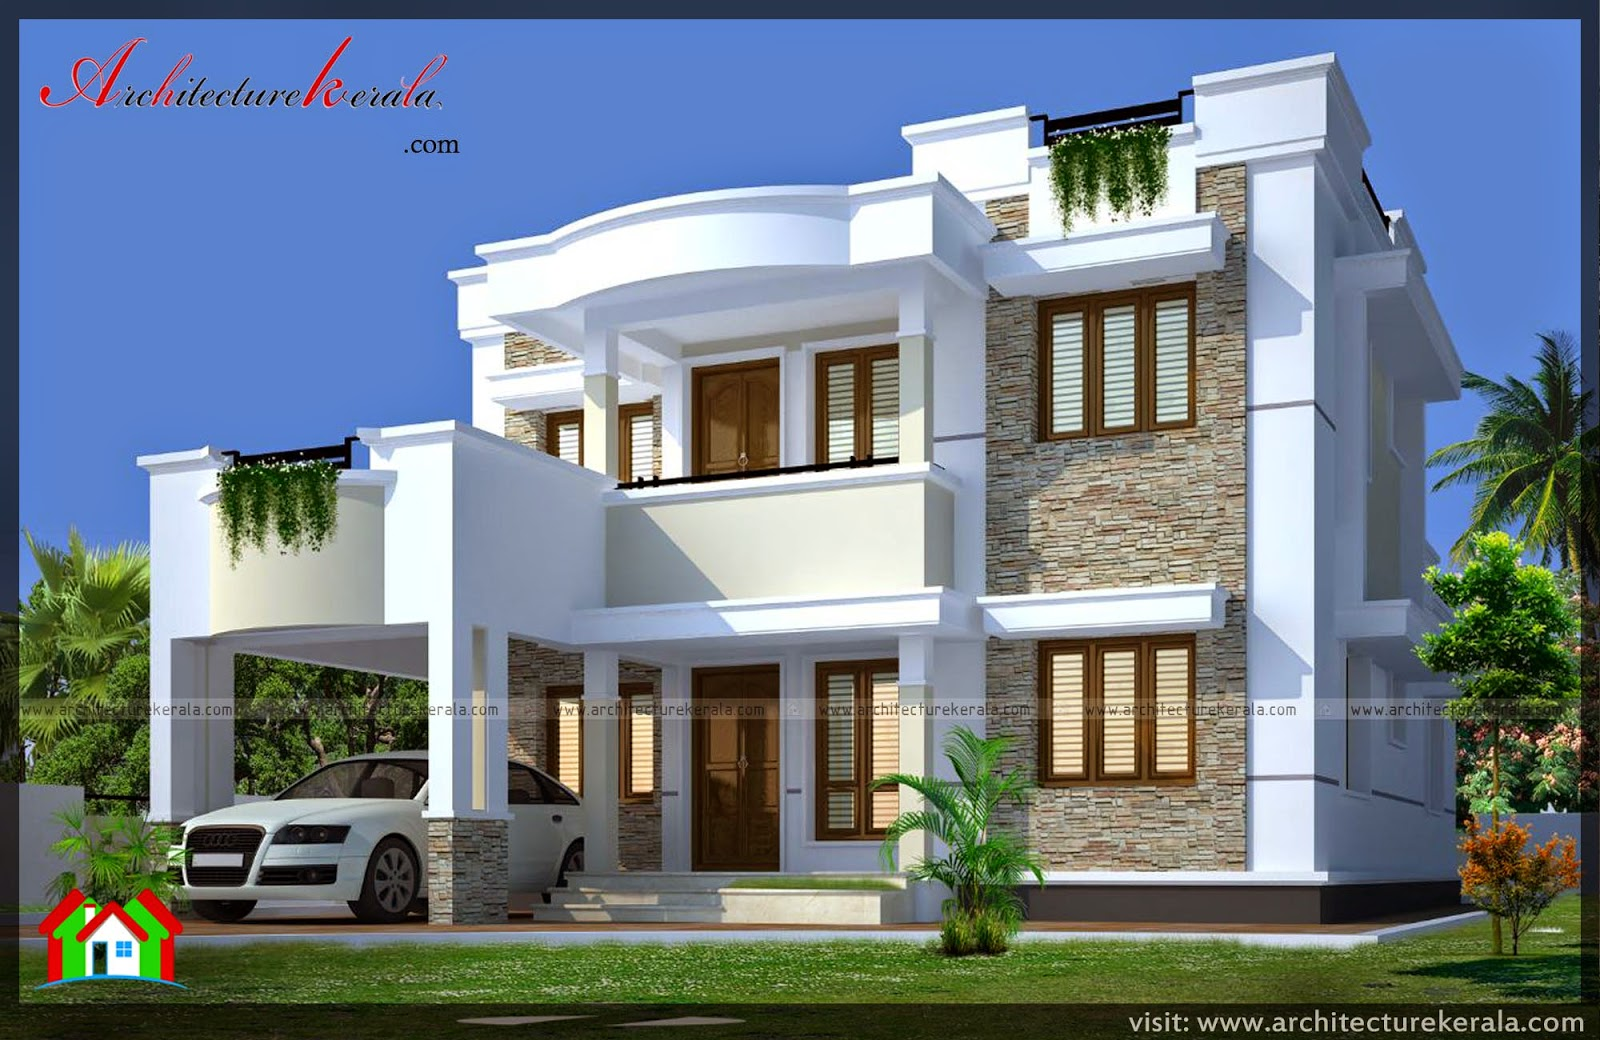 Architecture kerala 3 bhk single floor kerala house plan for New model veedu photos